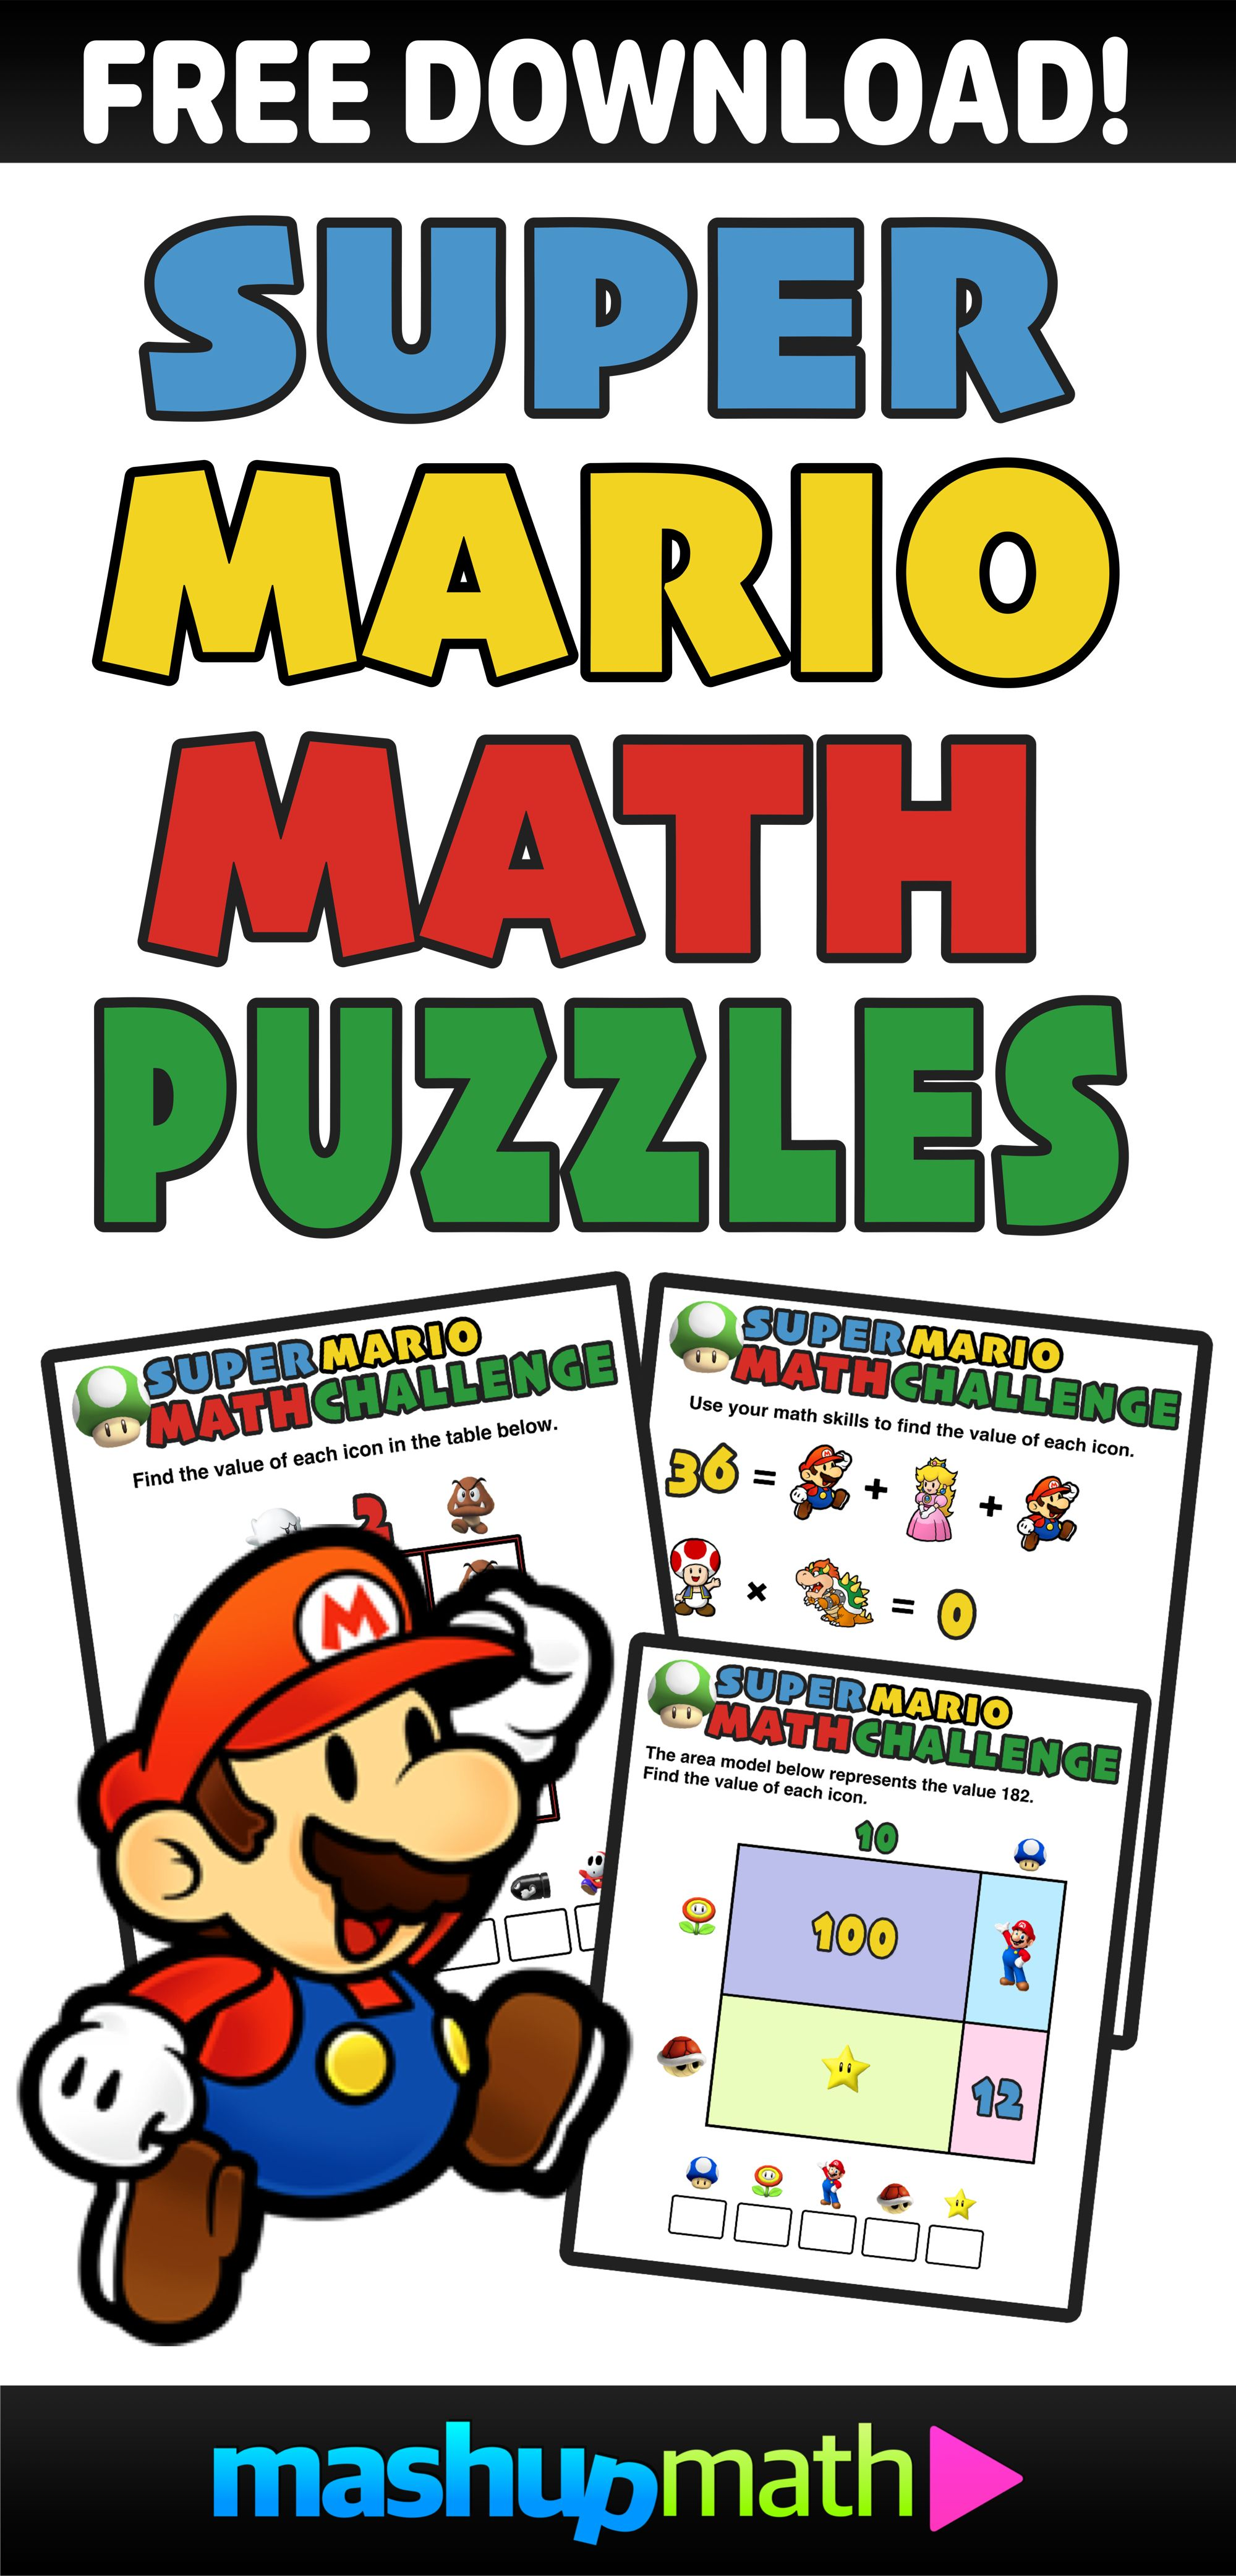 Have You Seen These Free Super Mario Math Puzzles